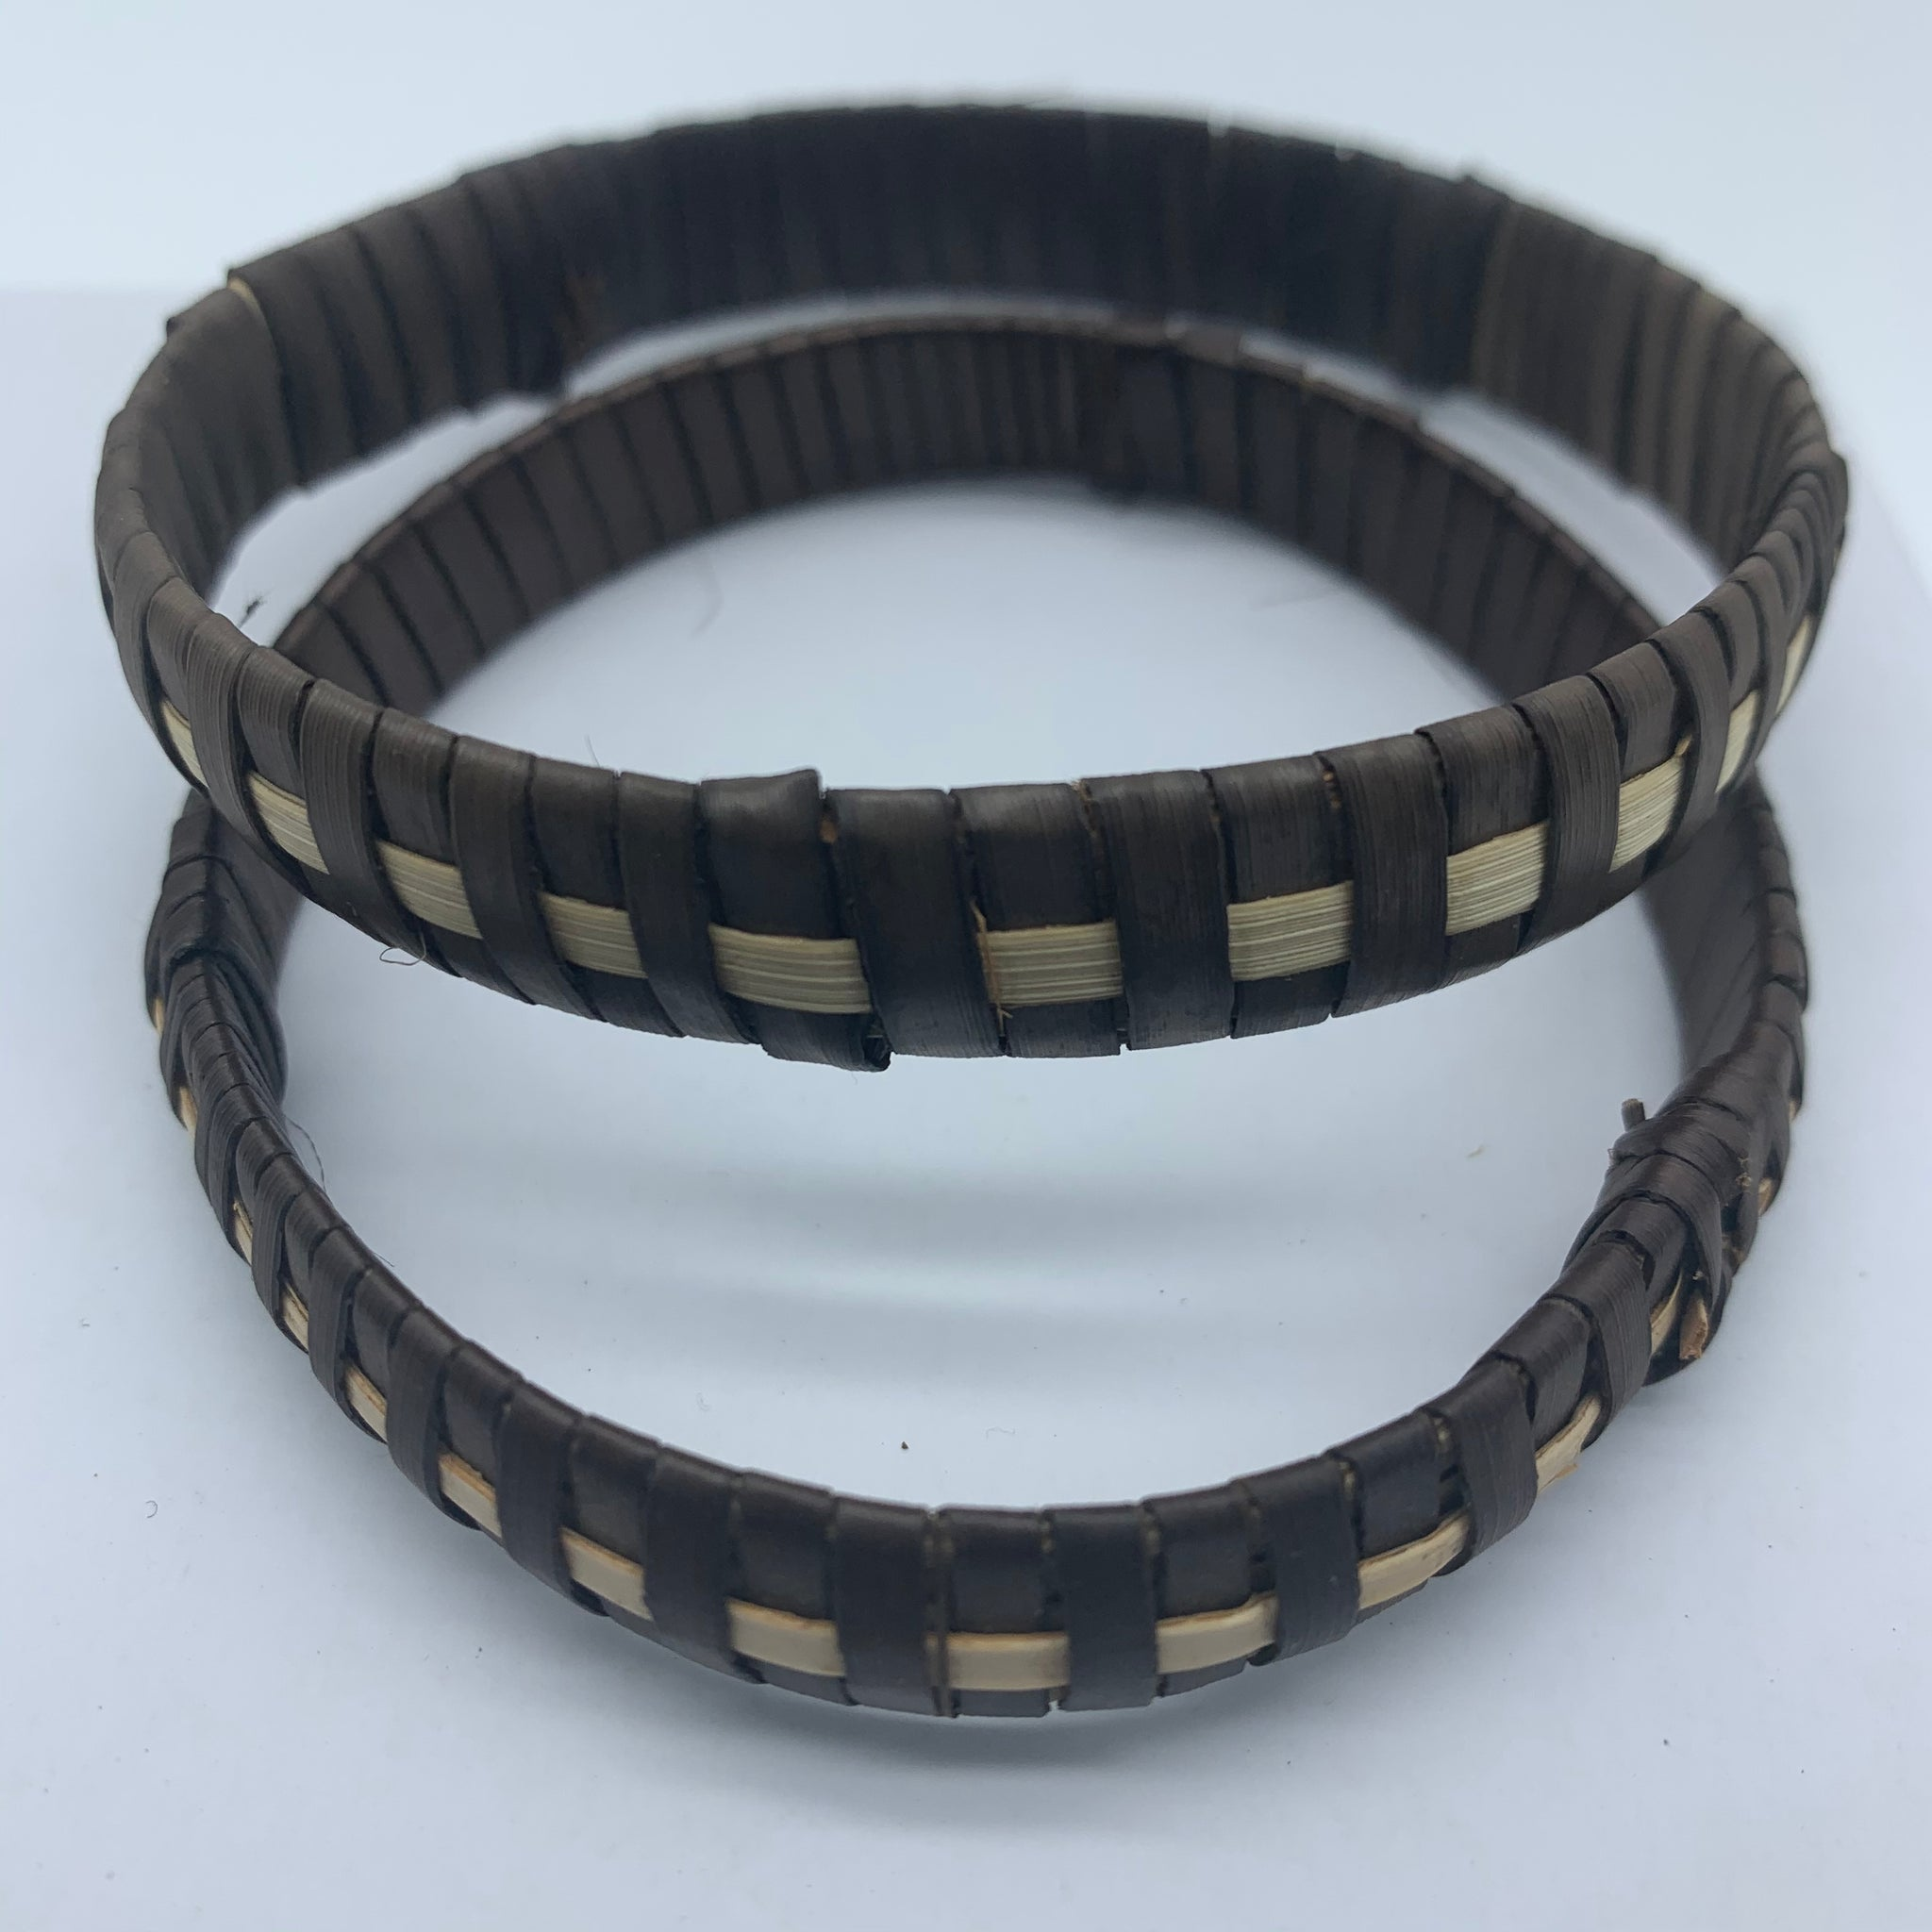 Basket Weave Bracelet-Brown Dye Variation 3 - Lillon Boutique